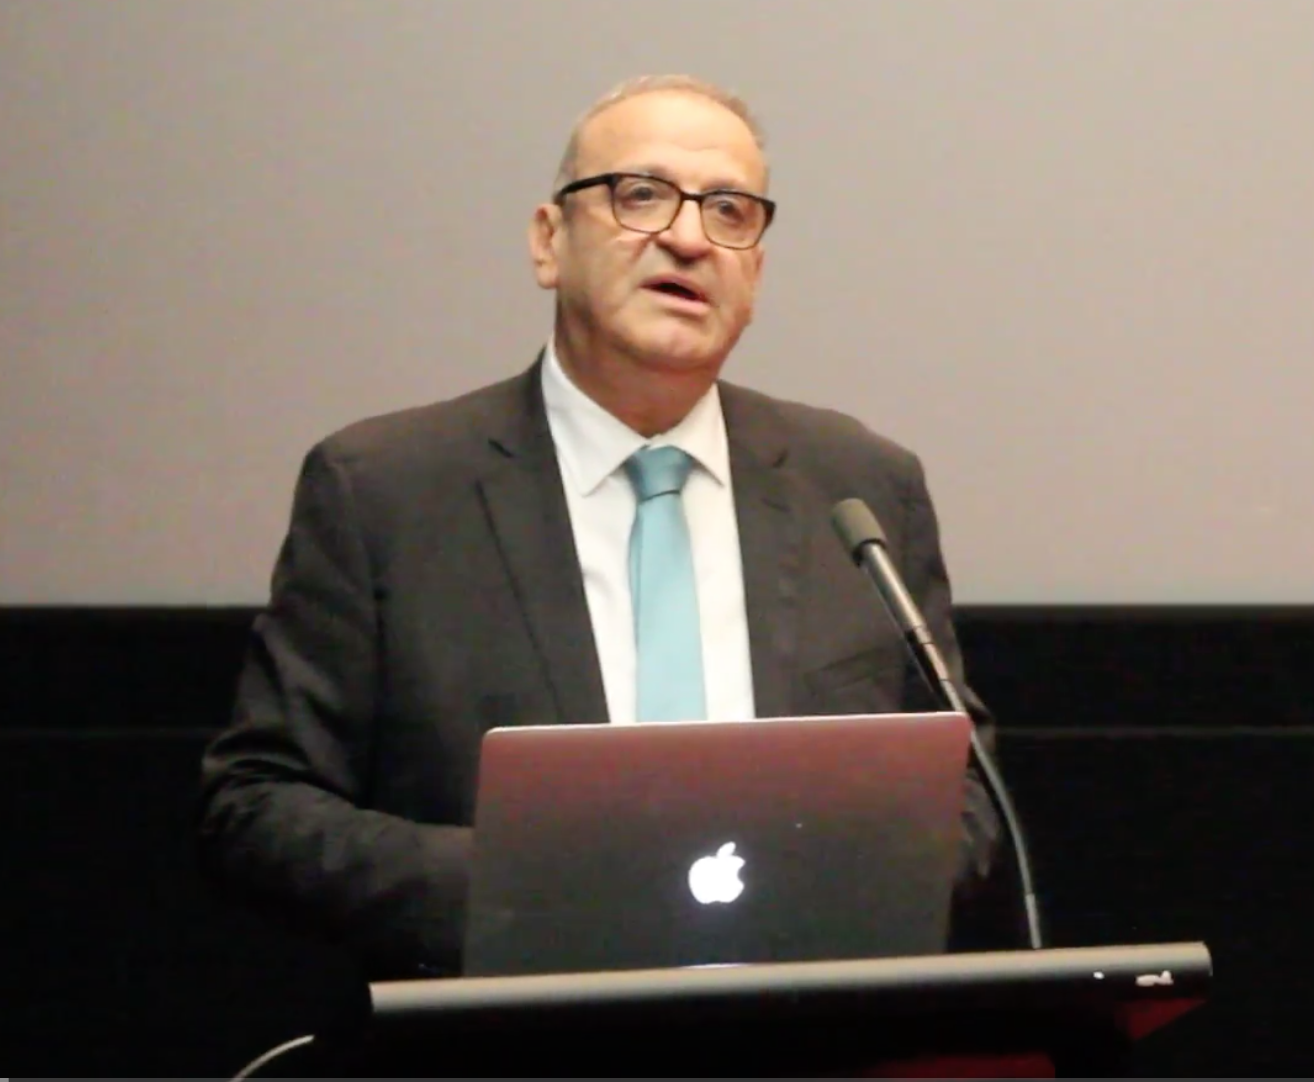 His Excellency Izzat Abdul-Hadi, Palestinian Ambassador to Australia